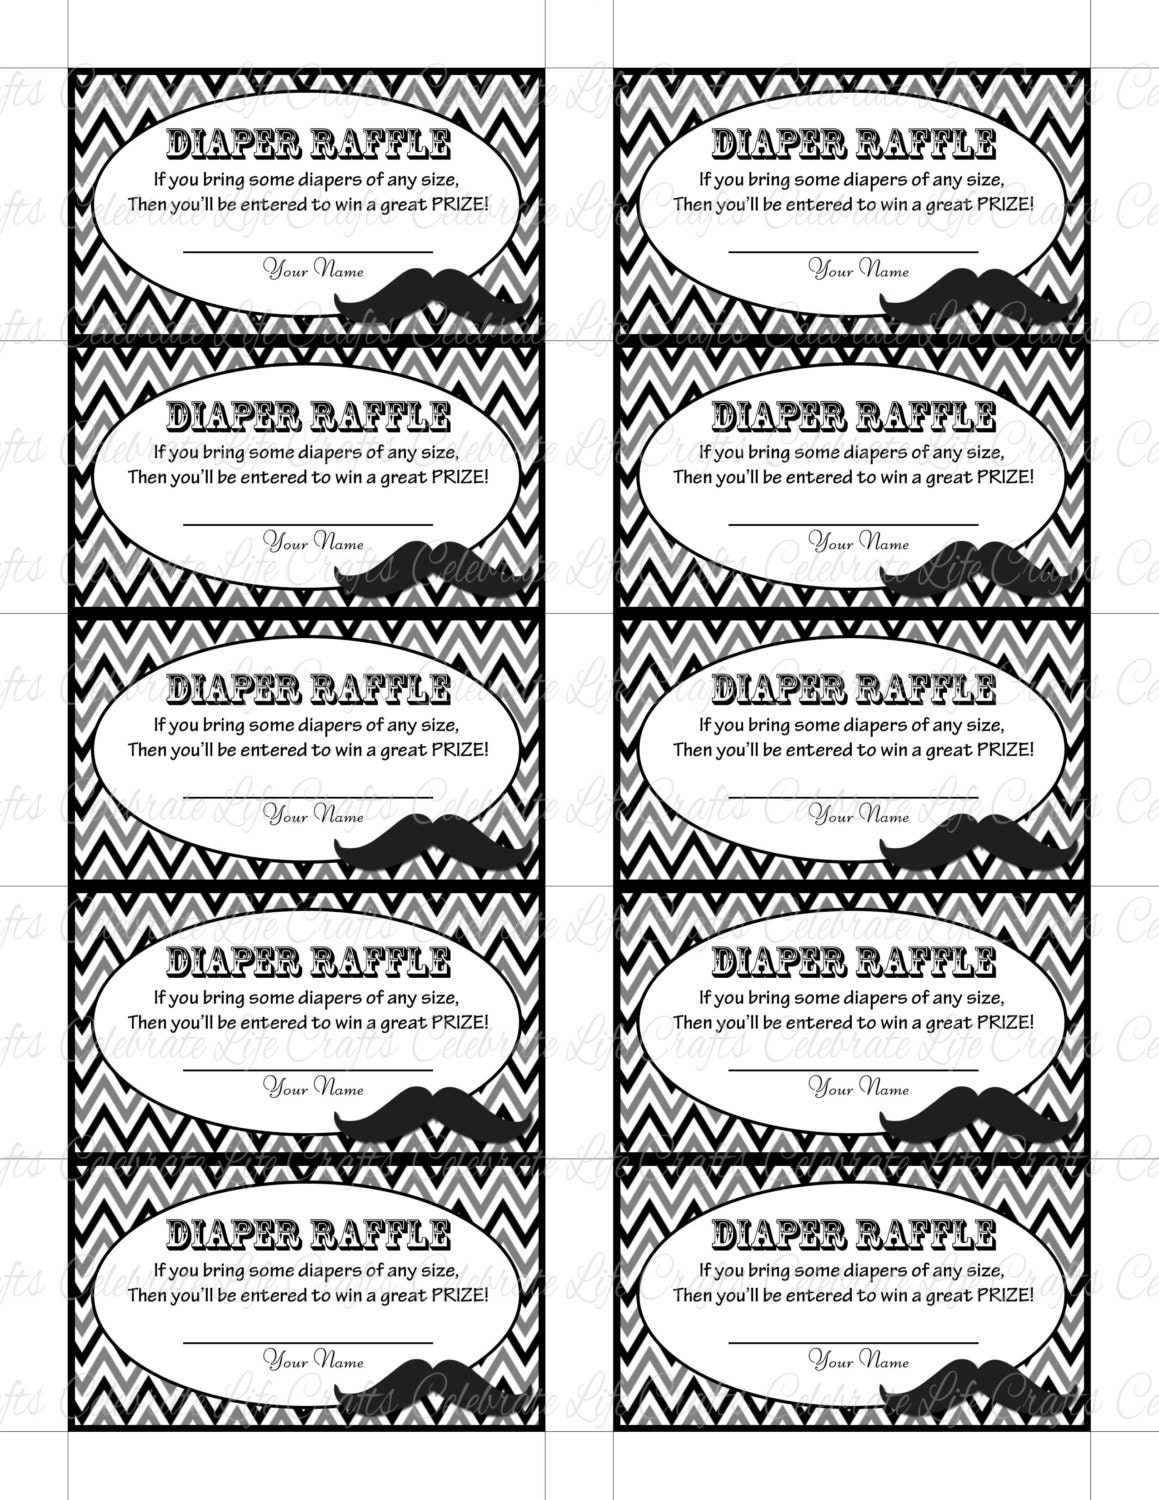 This is a graphic of Terrible Diaper Raffle Tickets Free Printable